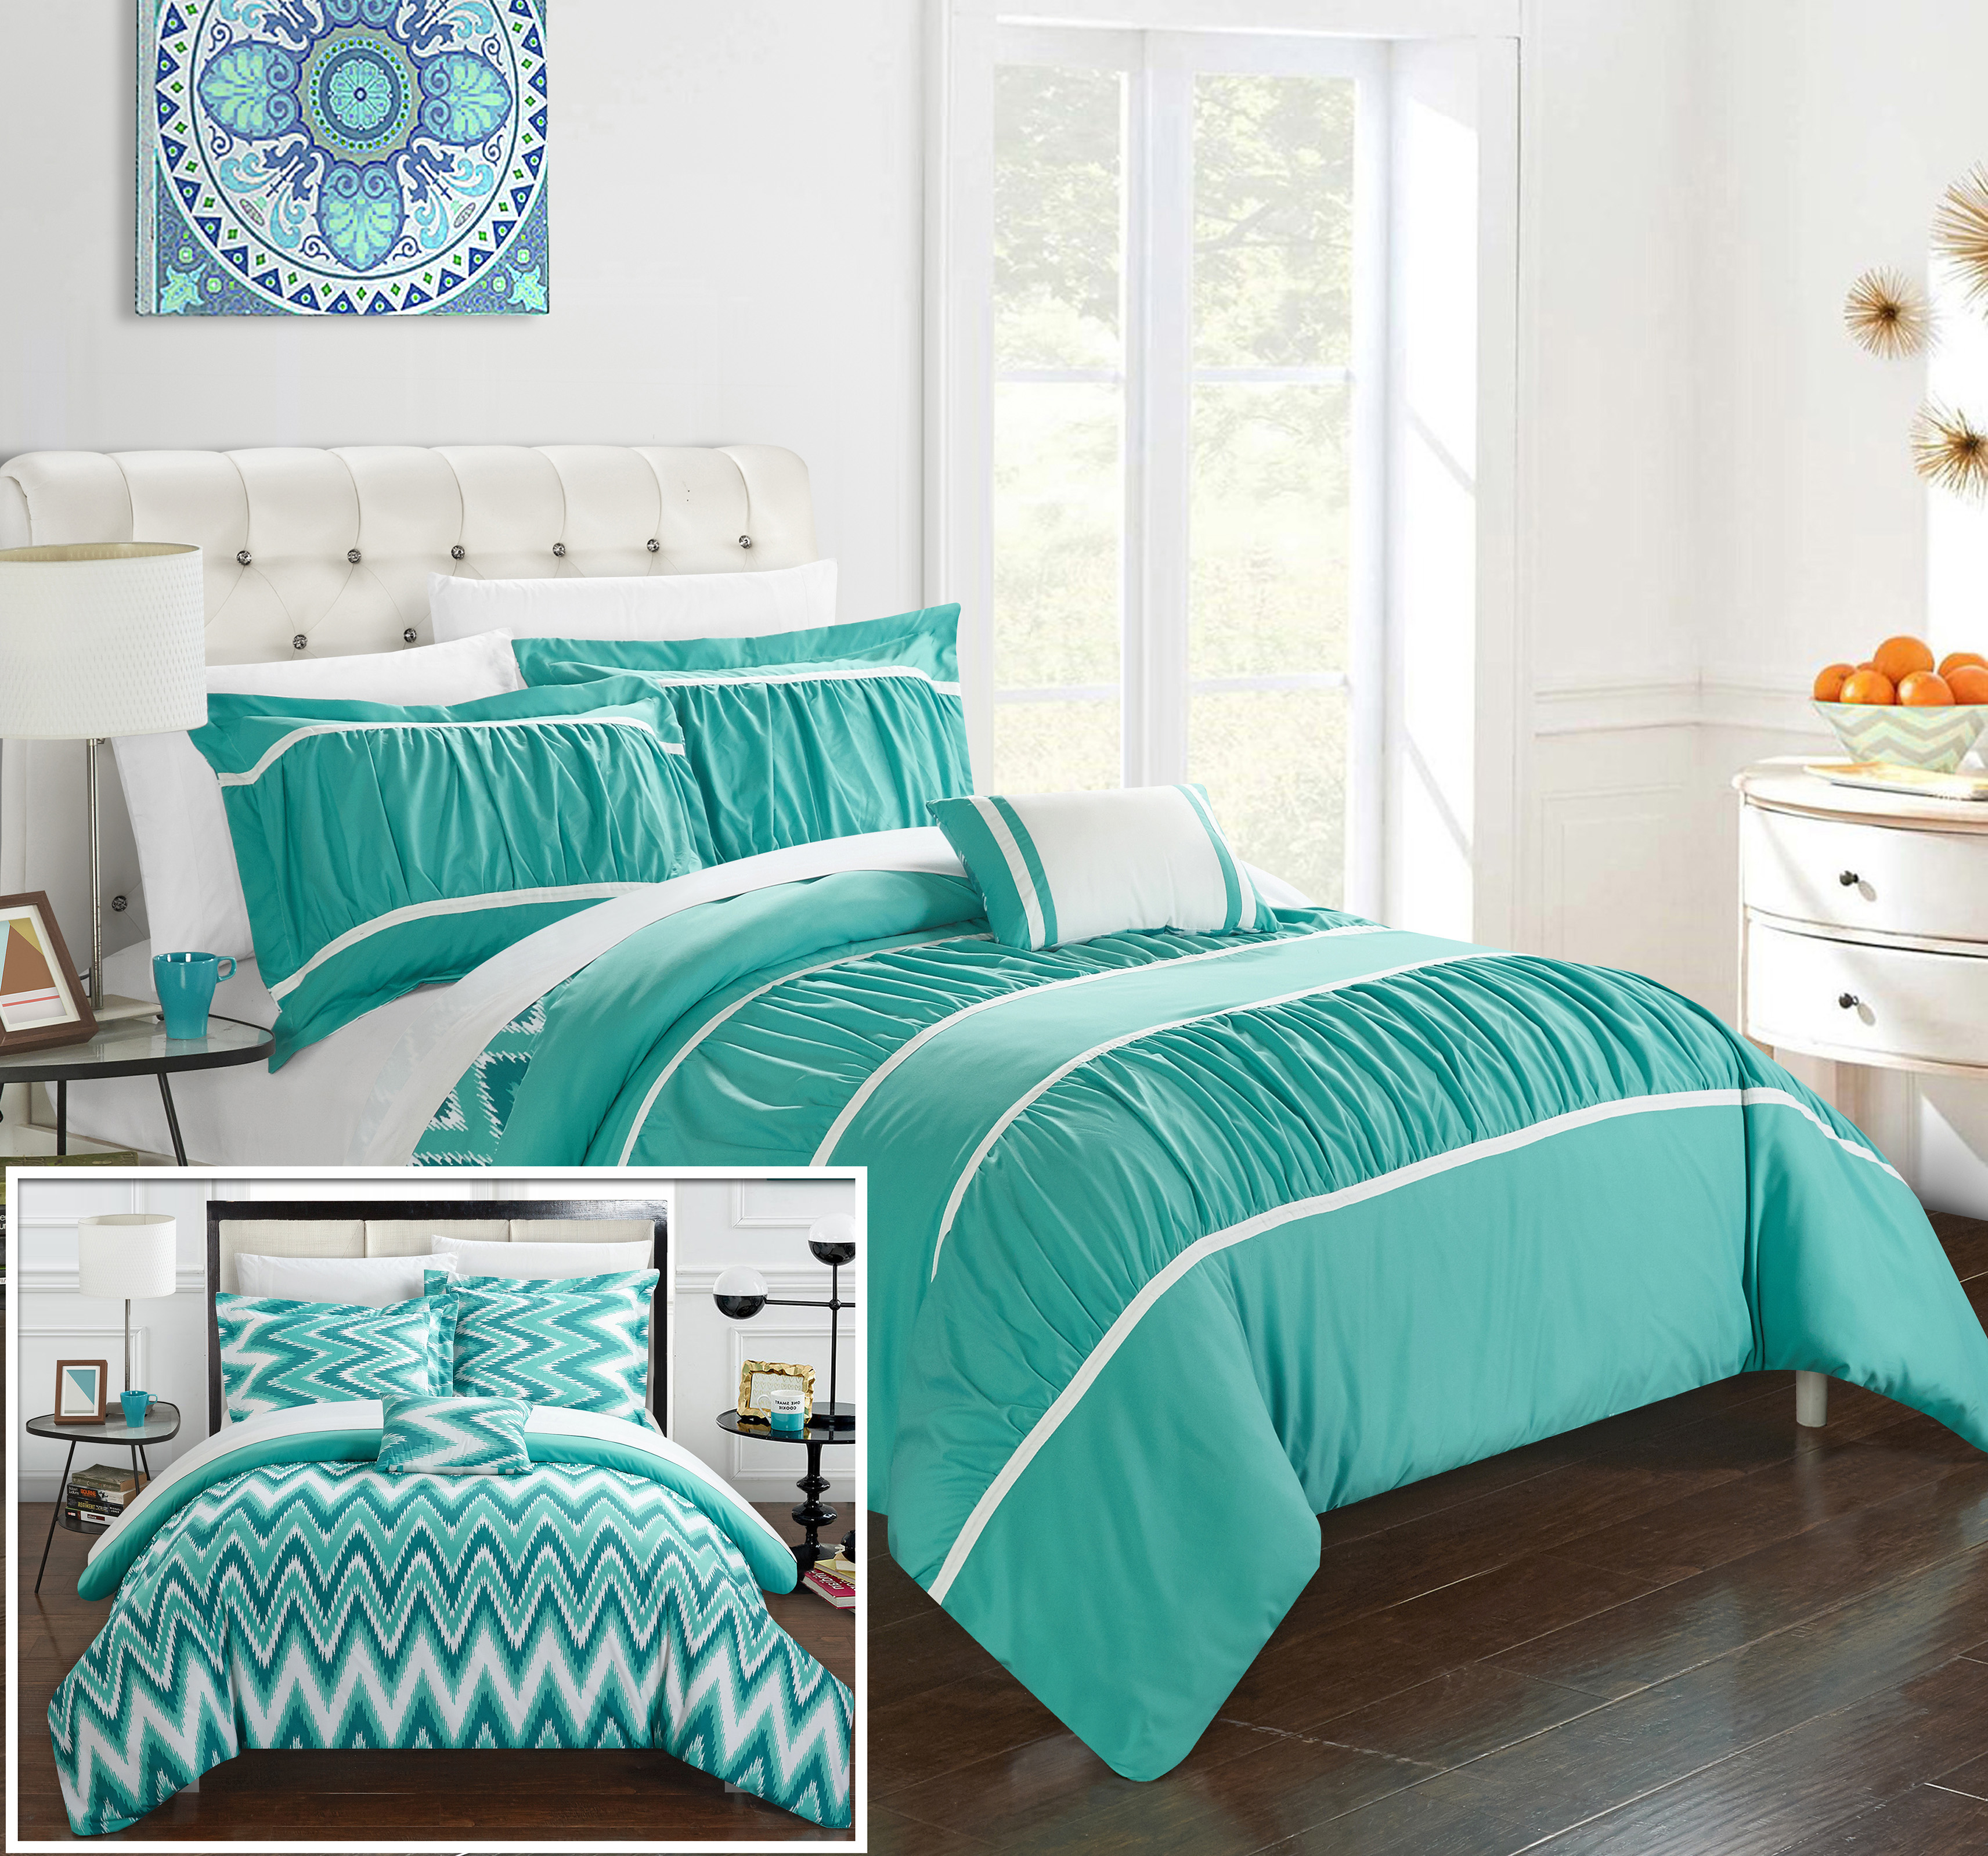 Chic Home 3/4 Piece Lucia Pleated & Ruffled With Chevron Reversible Backing Comforter Set Shams And Decorative Pillows Included - Turquoise, King